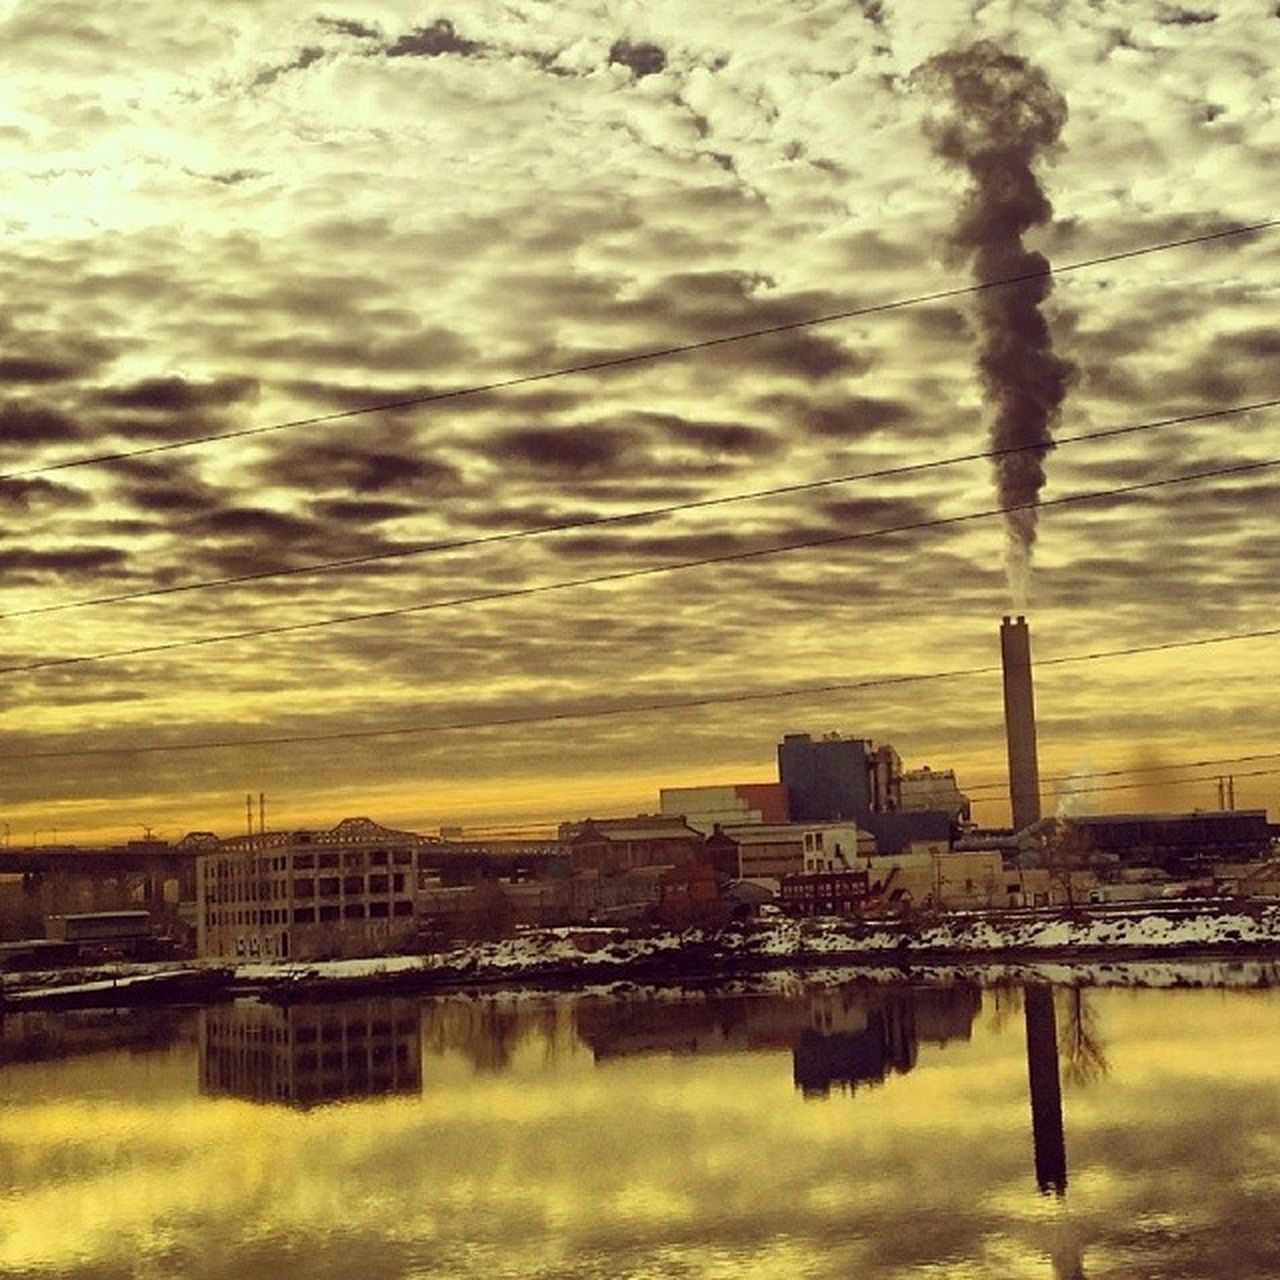 smoke stack, built structure, architecture, building exterior, water, sky, smoke - physical structure, emitting, pollution, chimney, industry, factory, no people, cloud - sky, waterfront, river, sunset, fumes, outdoors, tall, city, nature, cityscape, day, vapor trail